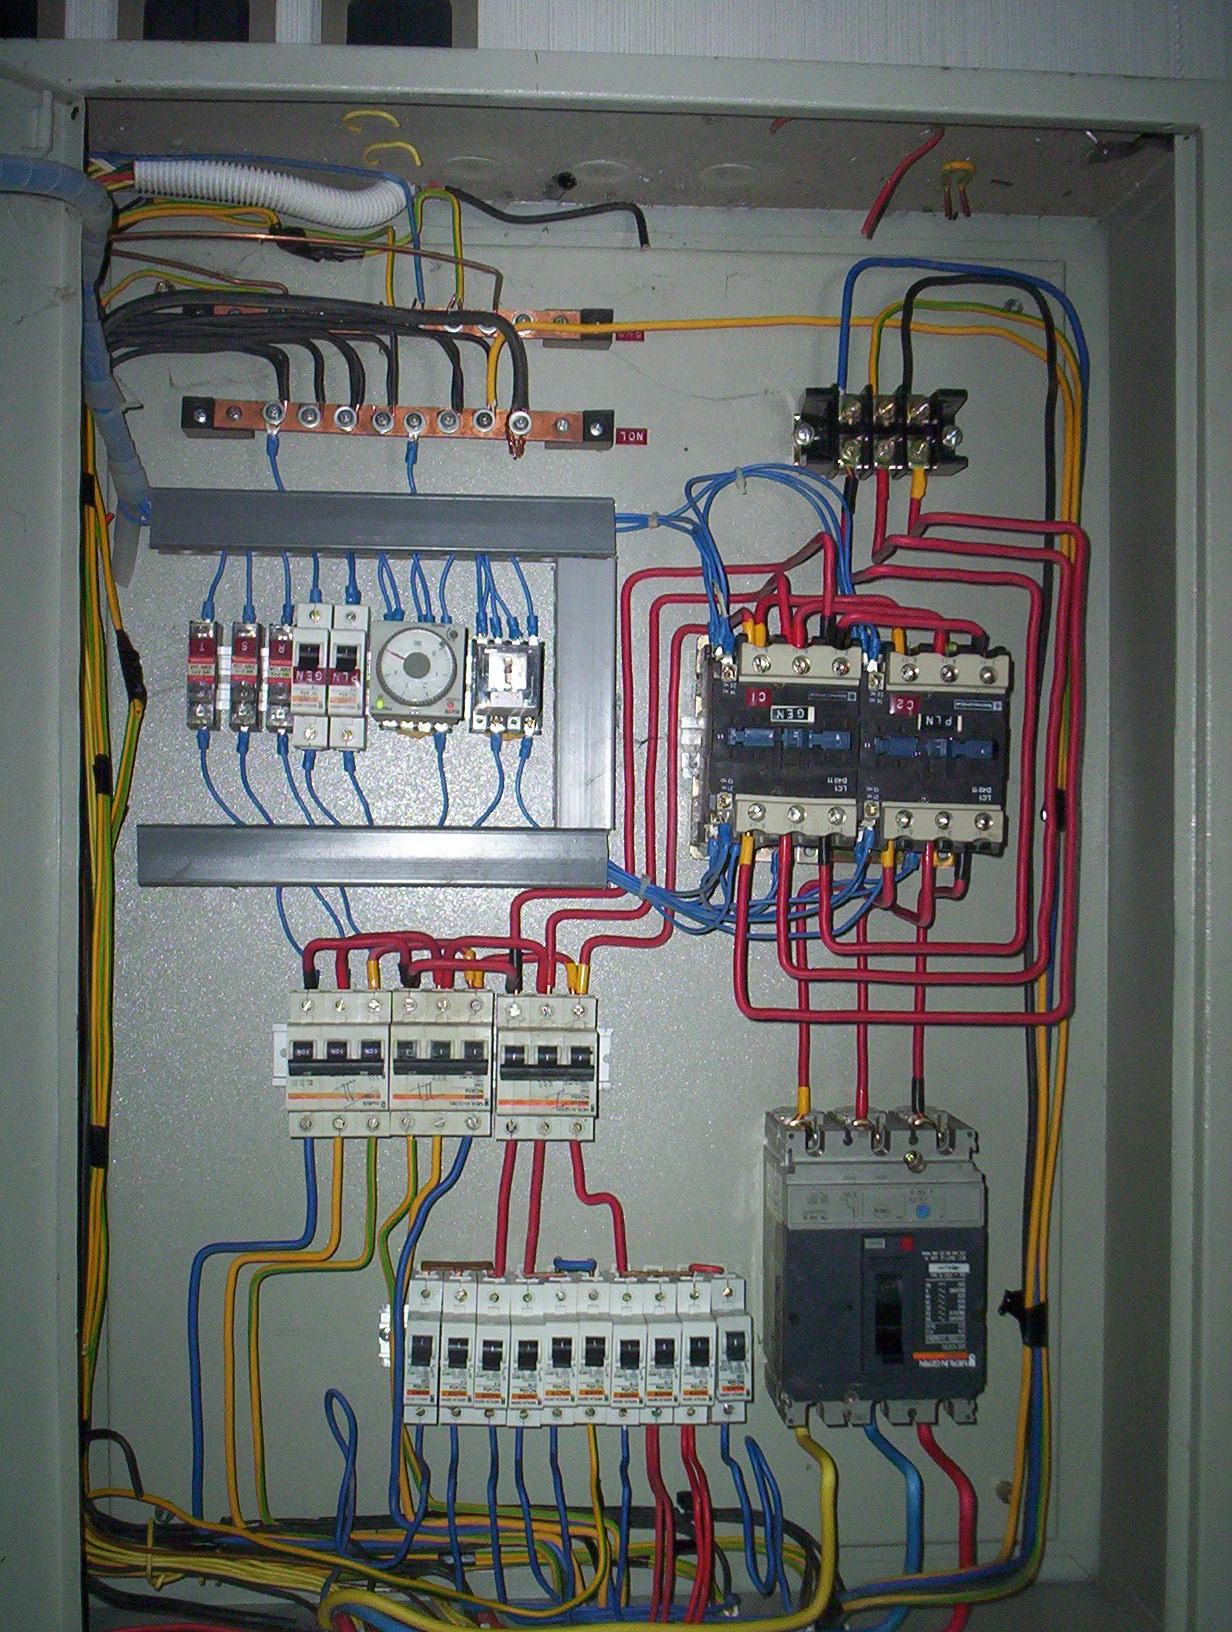 mcb electrical panel  | indra95.wordpres…